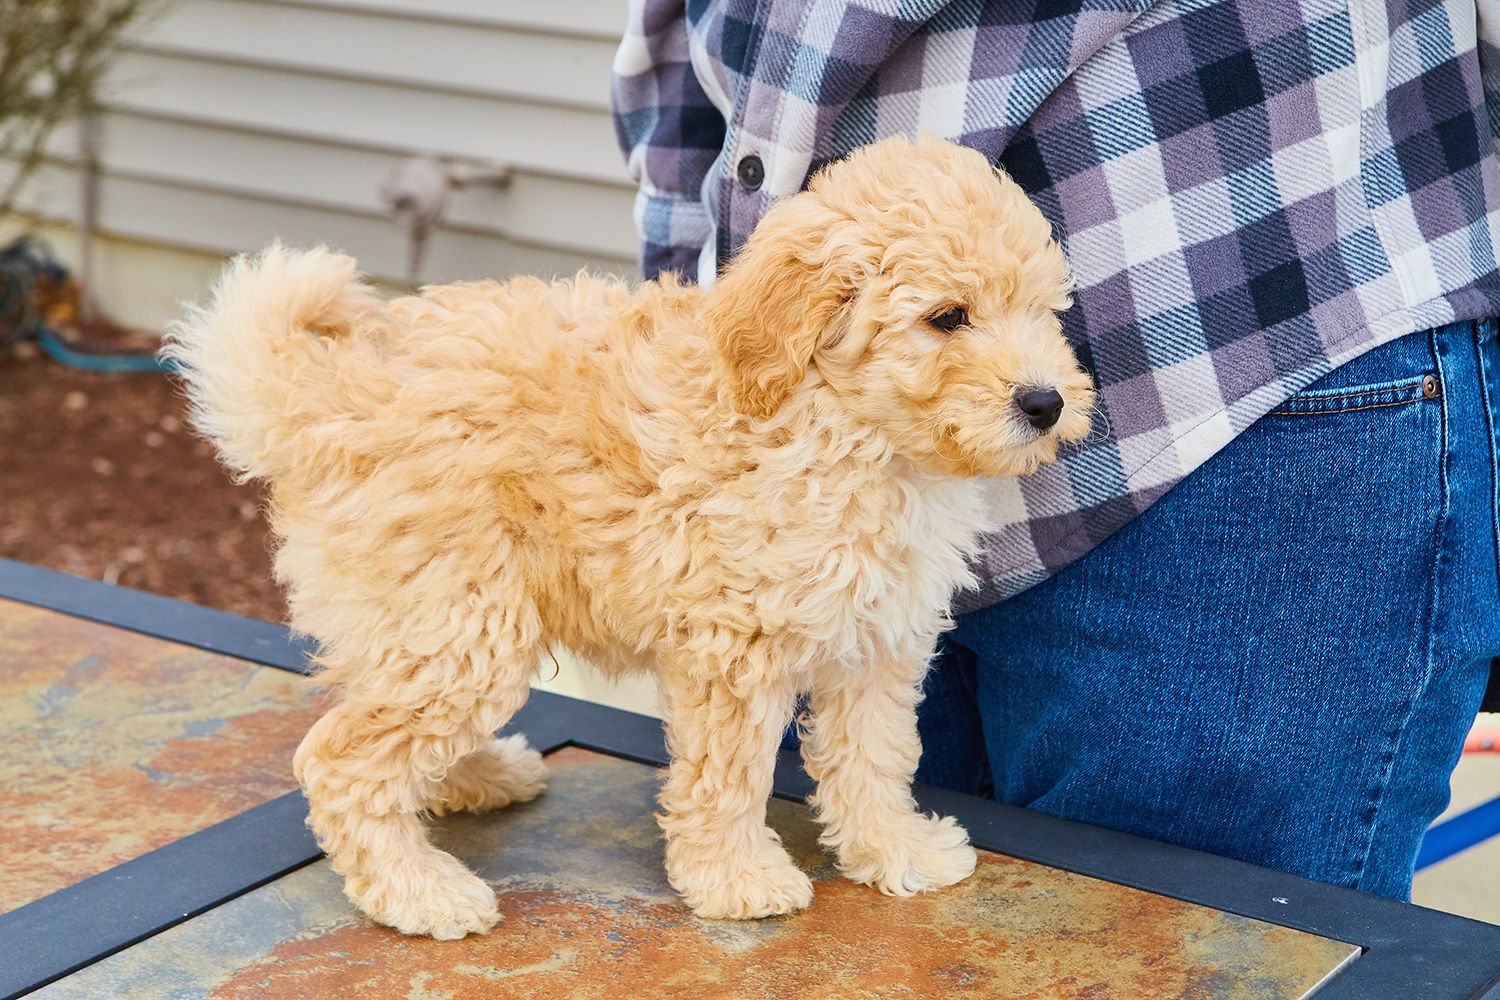 I Am A F1 Mini Goldendoodle Who Will Stand By You Loyalty Is My Middle Name My Siblings And I Are All Looking Puppies F1 Mini Goldendoodle Mini Goldendoodle